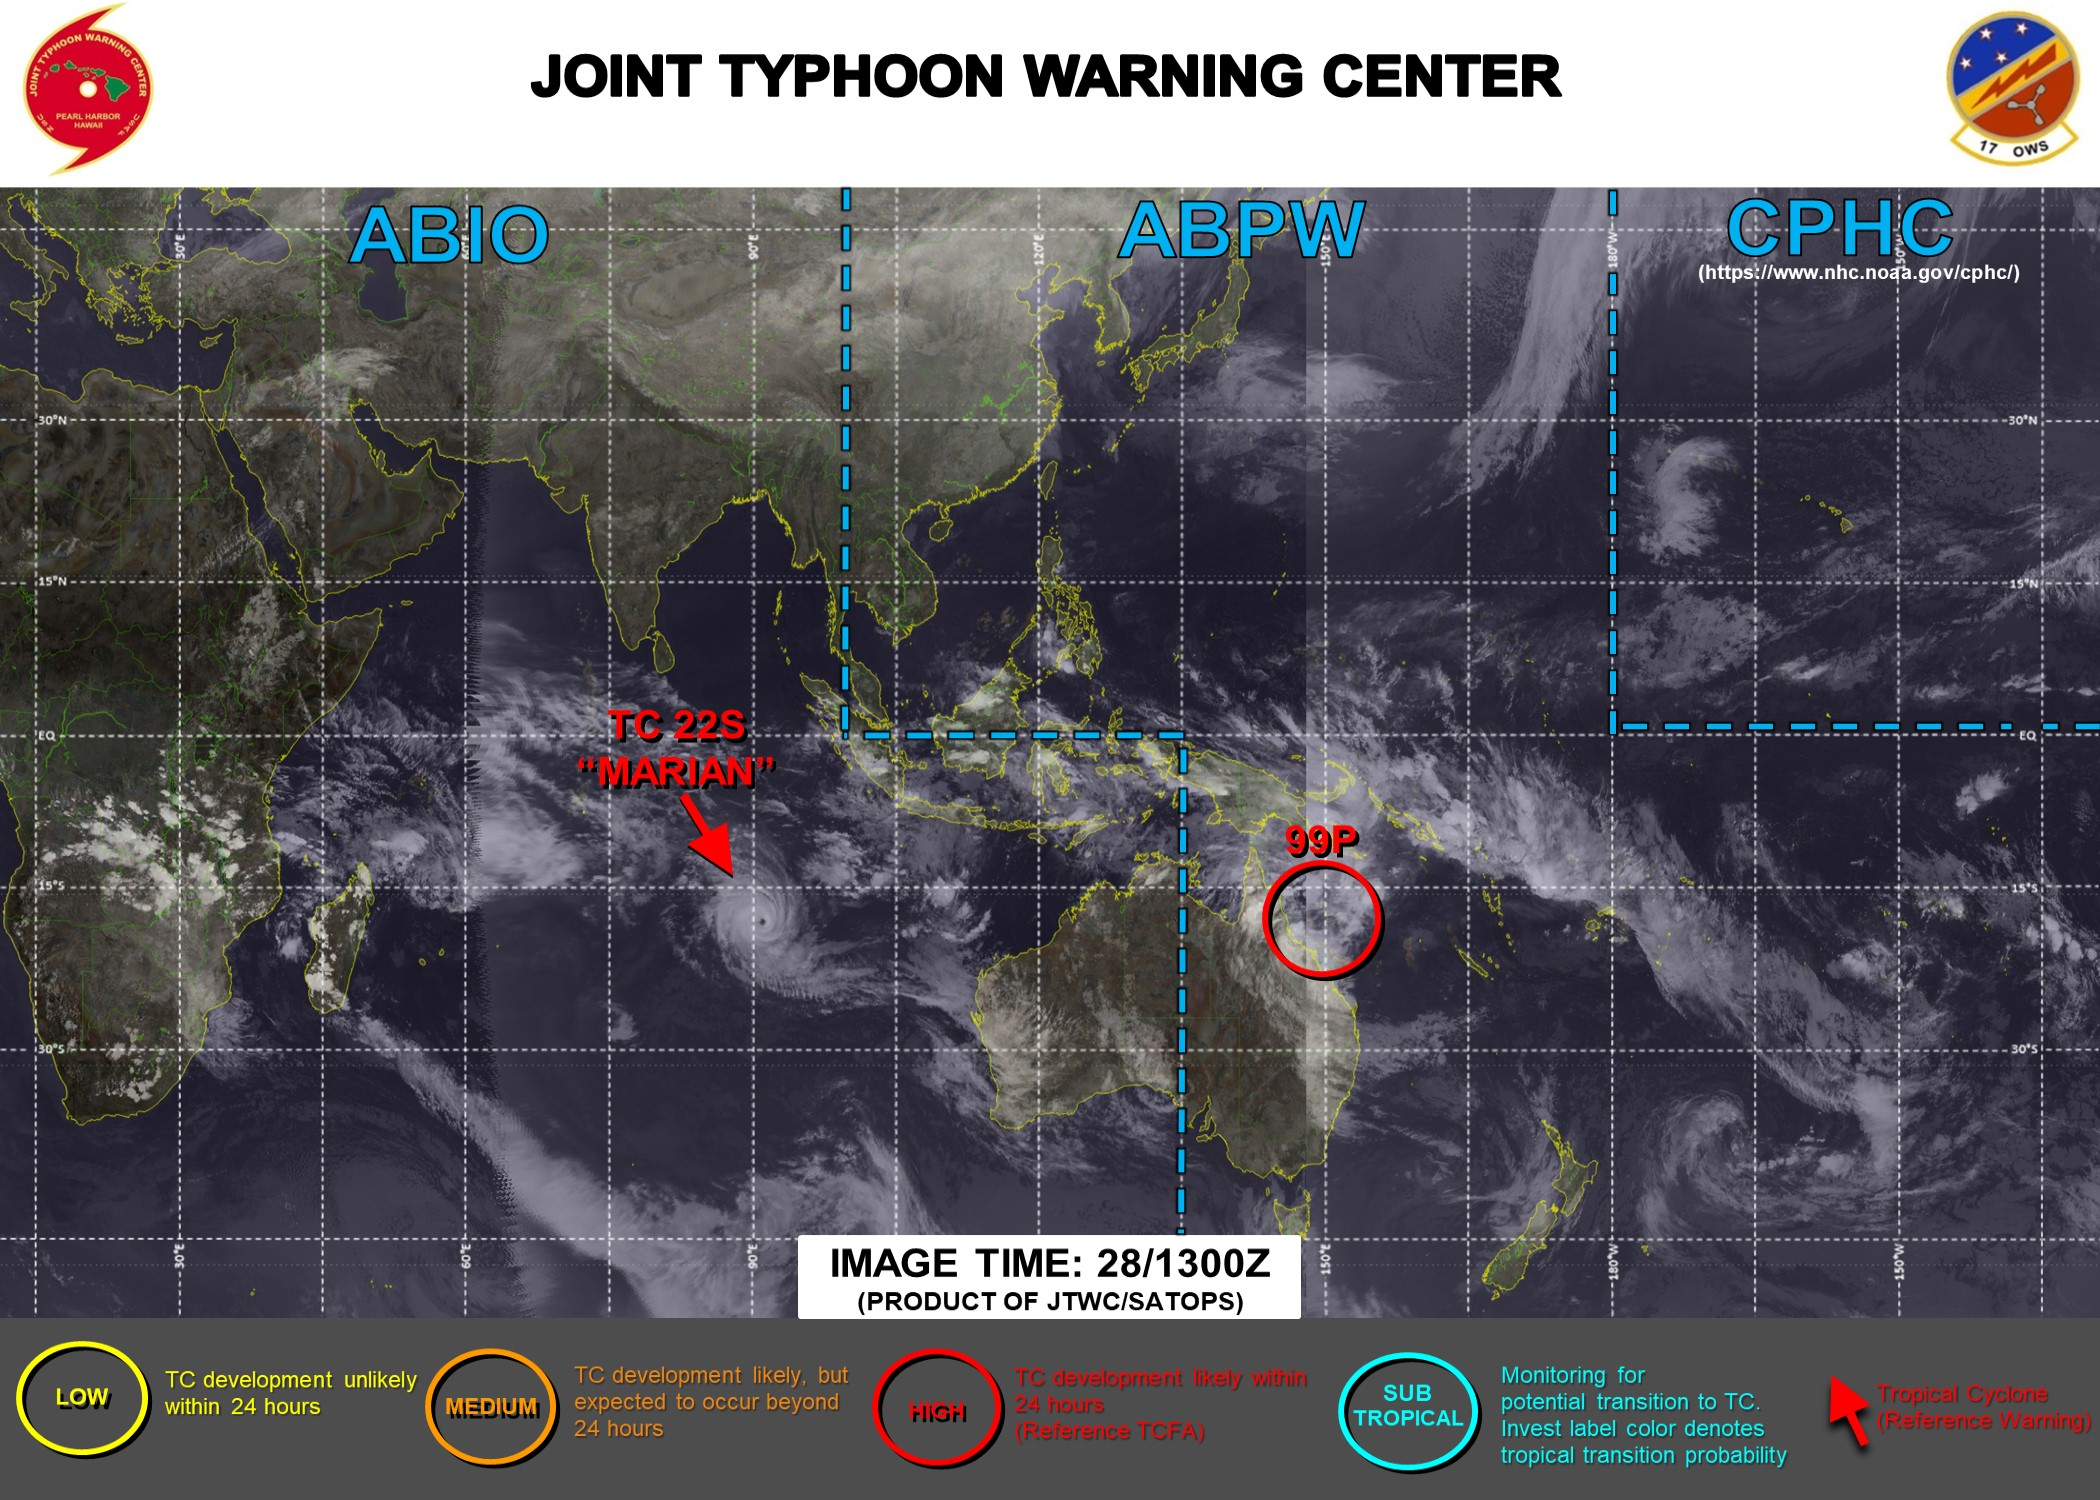 SOUTH PACIFIC/Coral Sea: Tropical Cyclone Formation Alert issued for Invest 99P, 28/12utc update